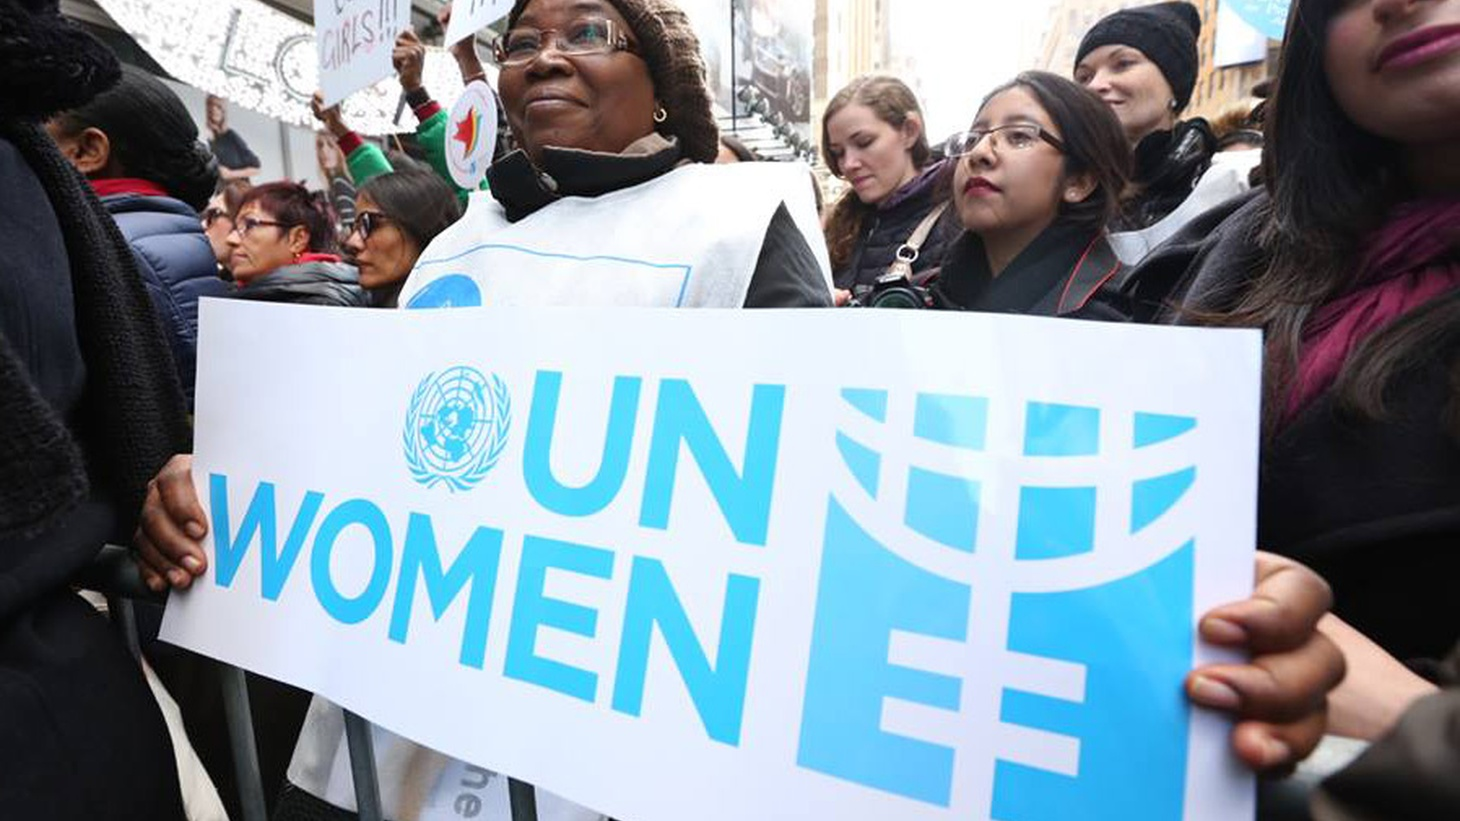 For 20 years world leaders have promised gender equality, but honor killings, rape and domestic abuse are still prevalent in many places.  We hear about this week's 59th session of the UN's Commission on the Status of Women, the progress that has been made and how much is left to be done.